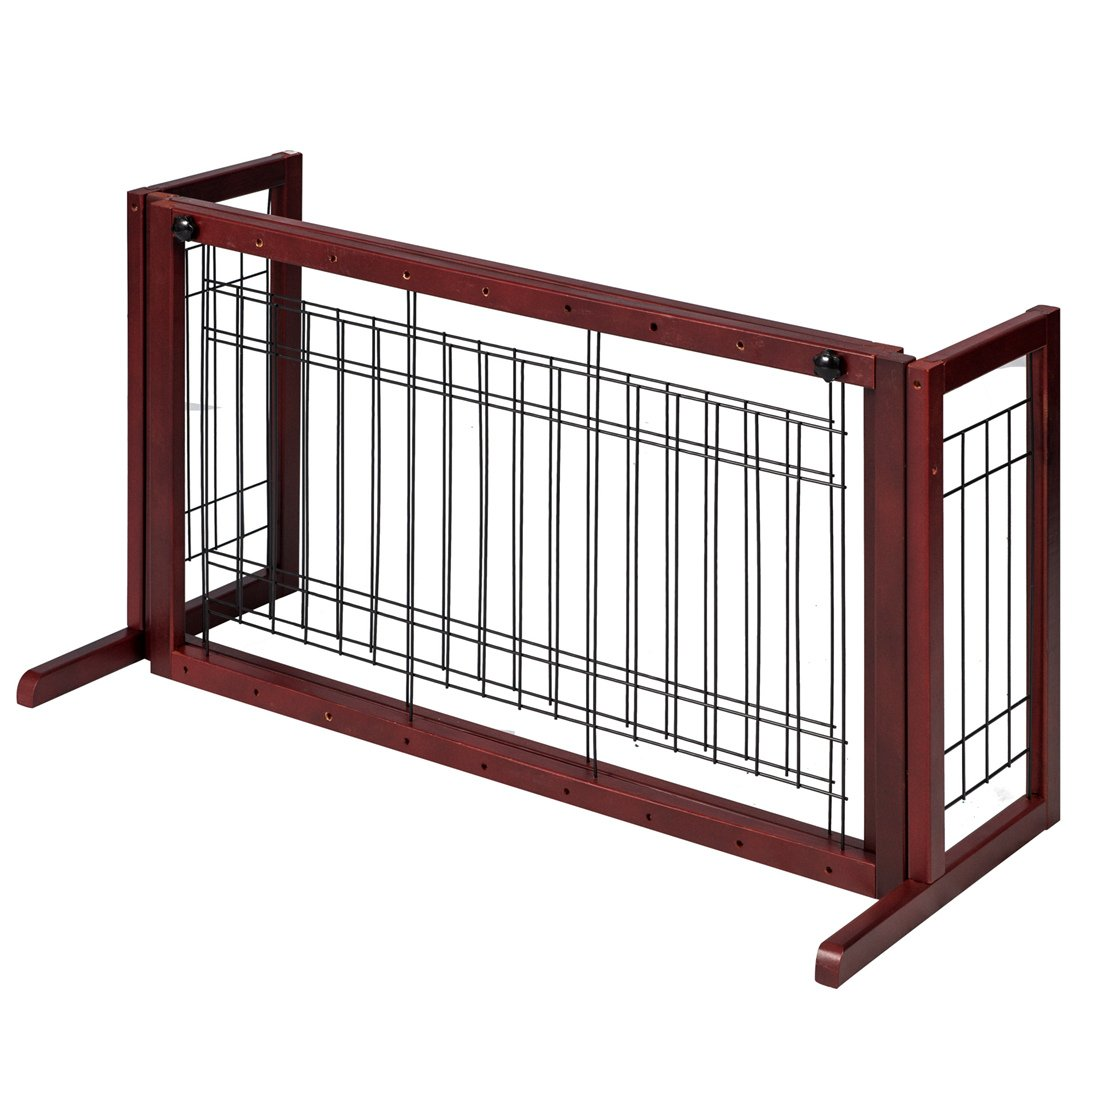 GOOD LIFE Wooden Fence Freestanding Pet Dog Gate Indoor Adjustable Gates for Home Coffee Color 72 Inch PET344 by GOOD LIFE USA (Image #3)